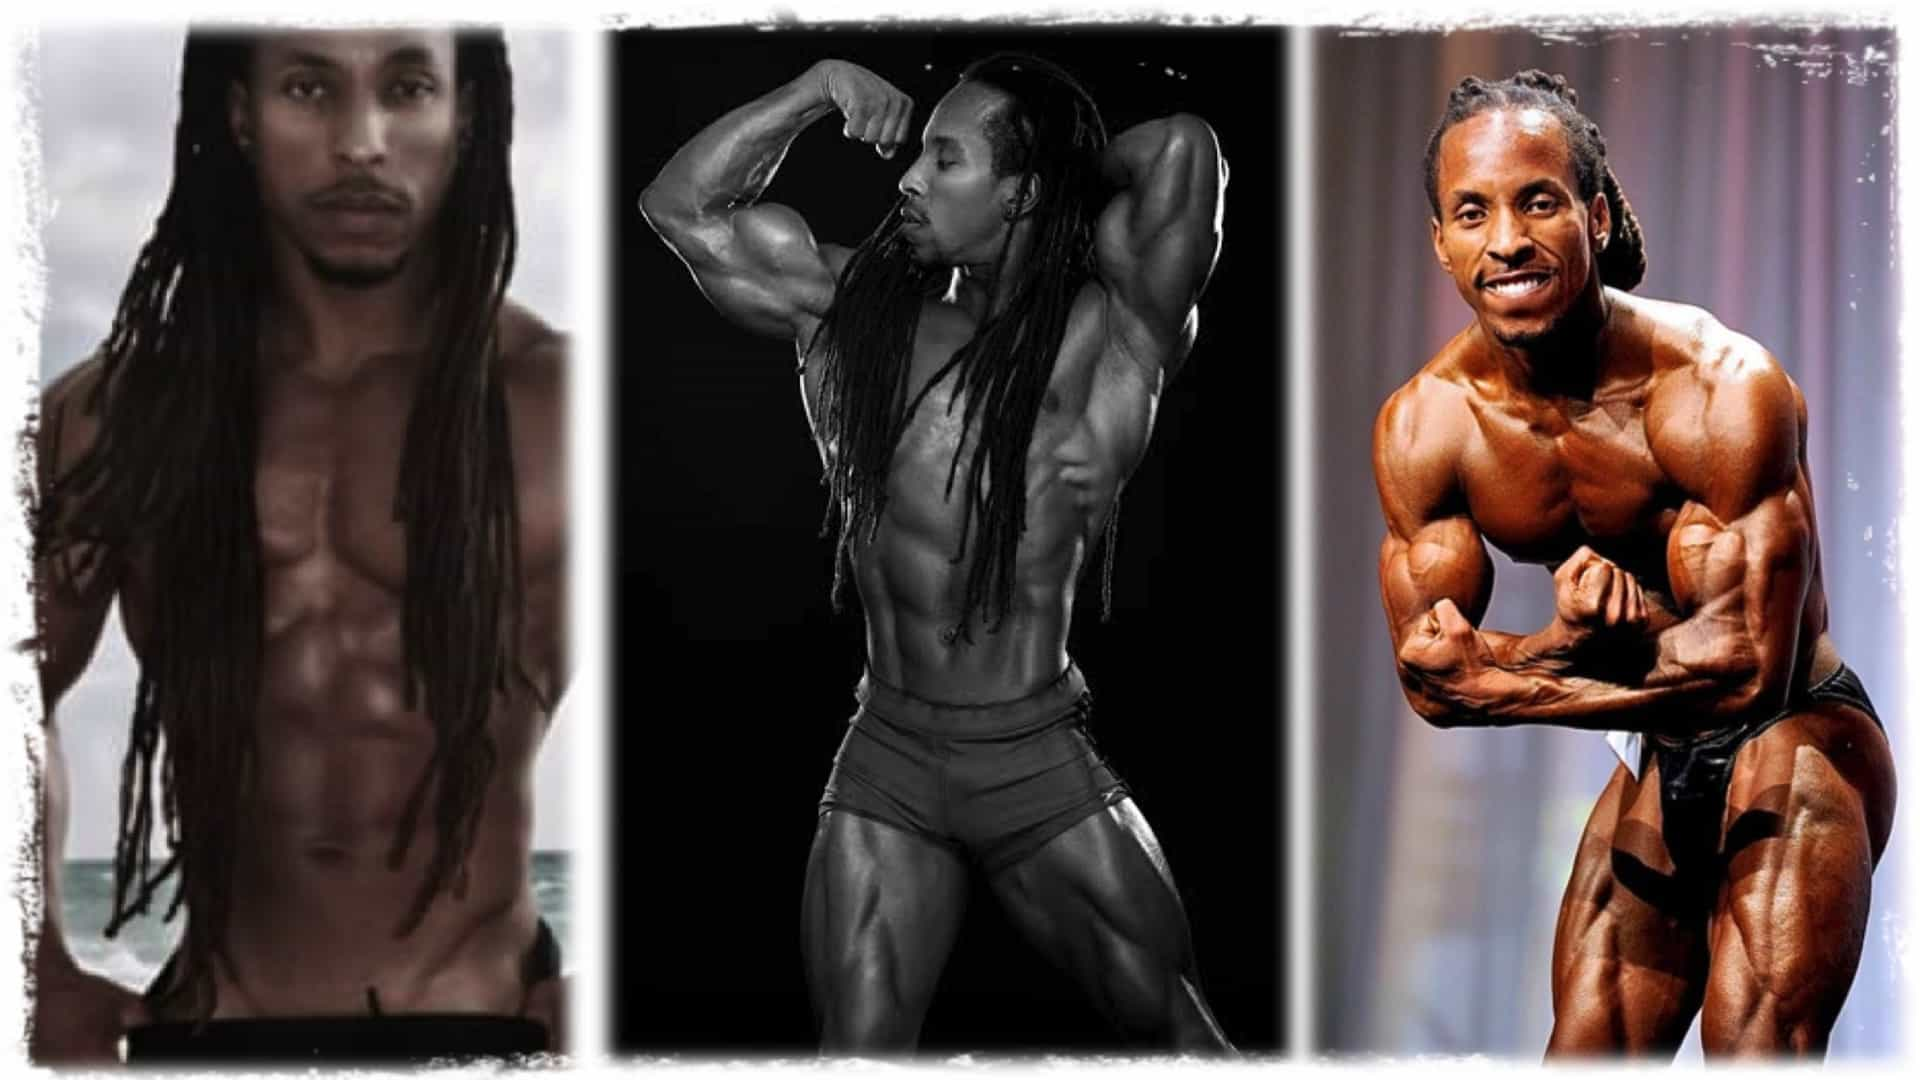 Body builder Torre Washington is shown in three different images. In each he is seen in a body building pose showing a incredible physique.